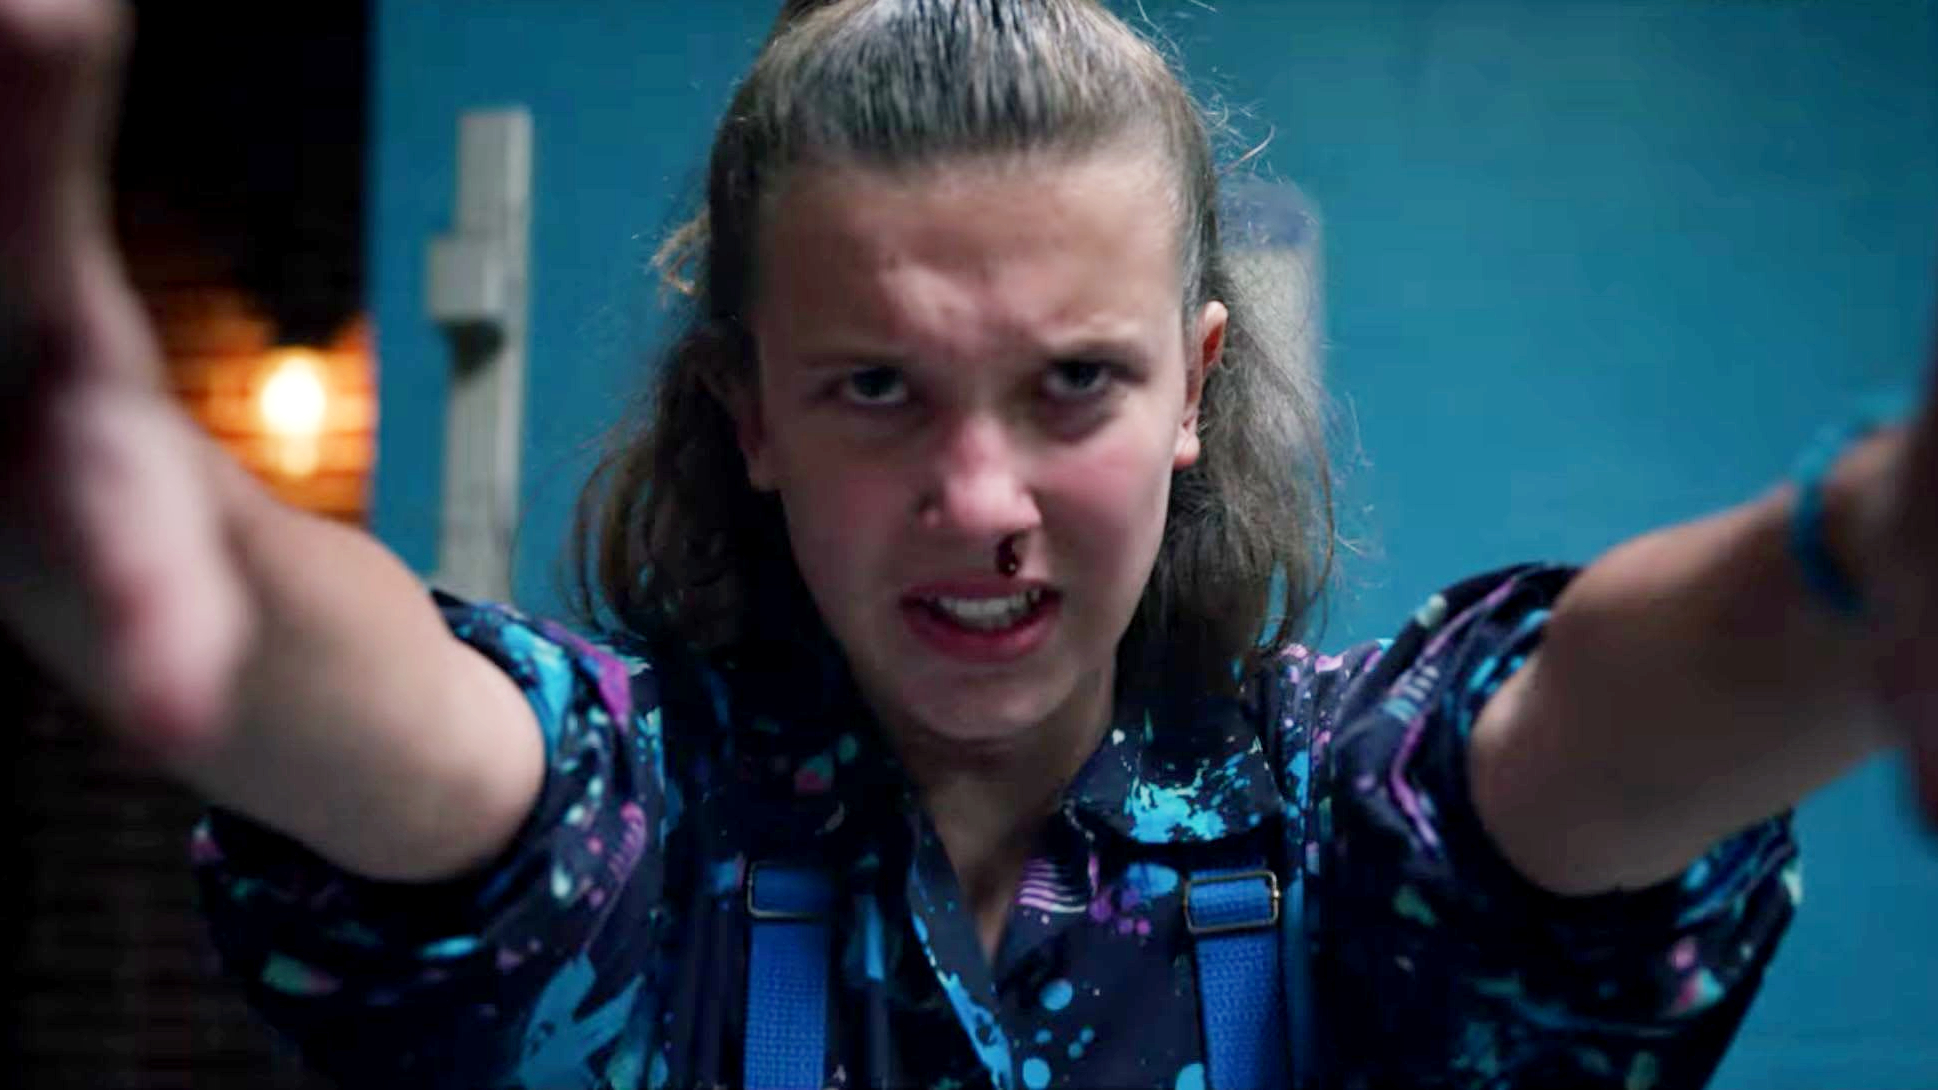 Millie Bobby Brown Getting Her Own Stranger Things Spinoff Series?